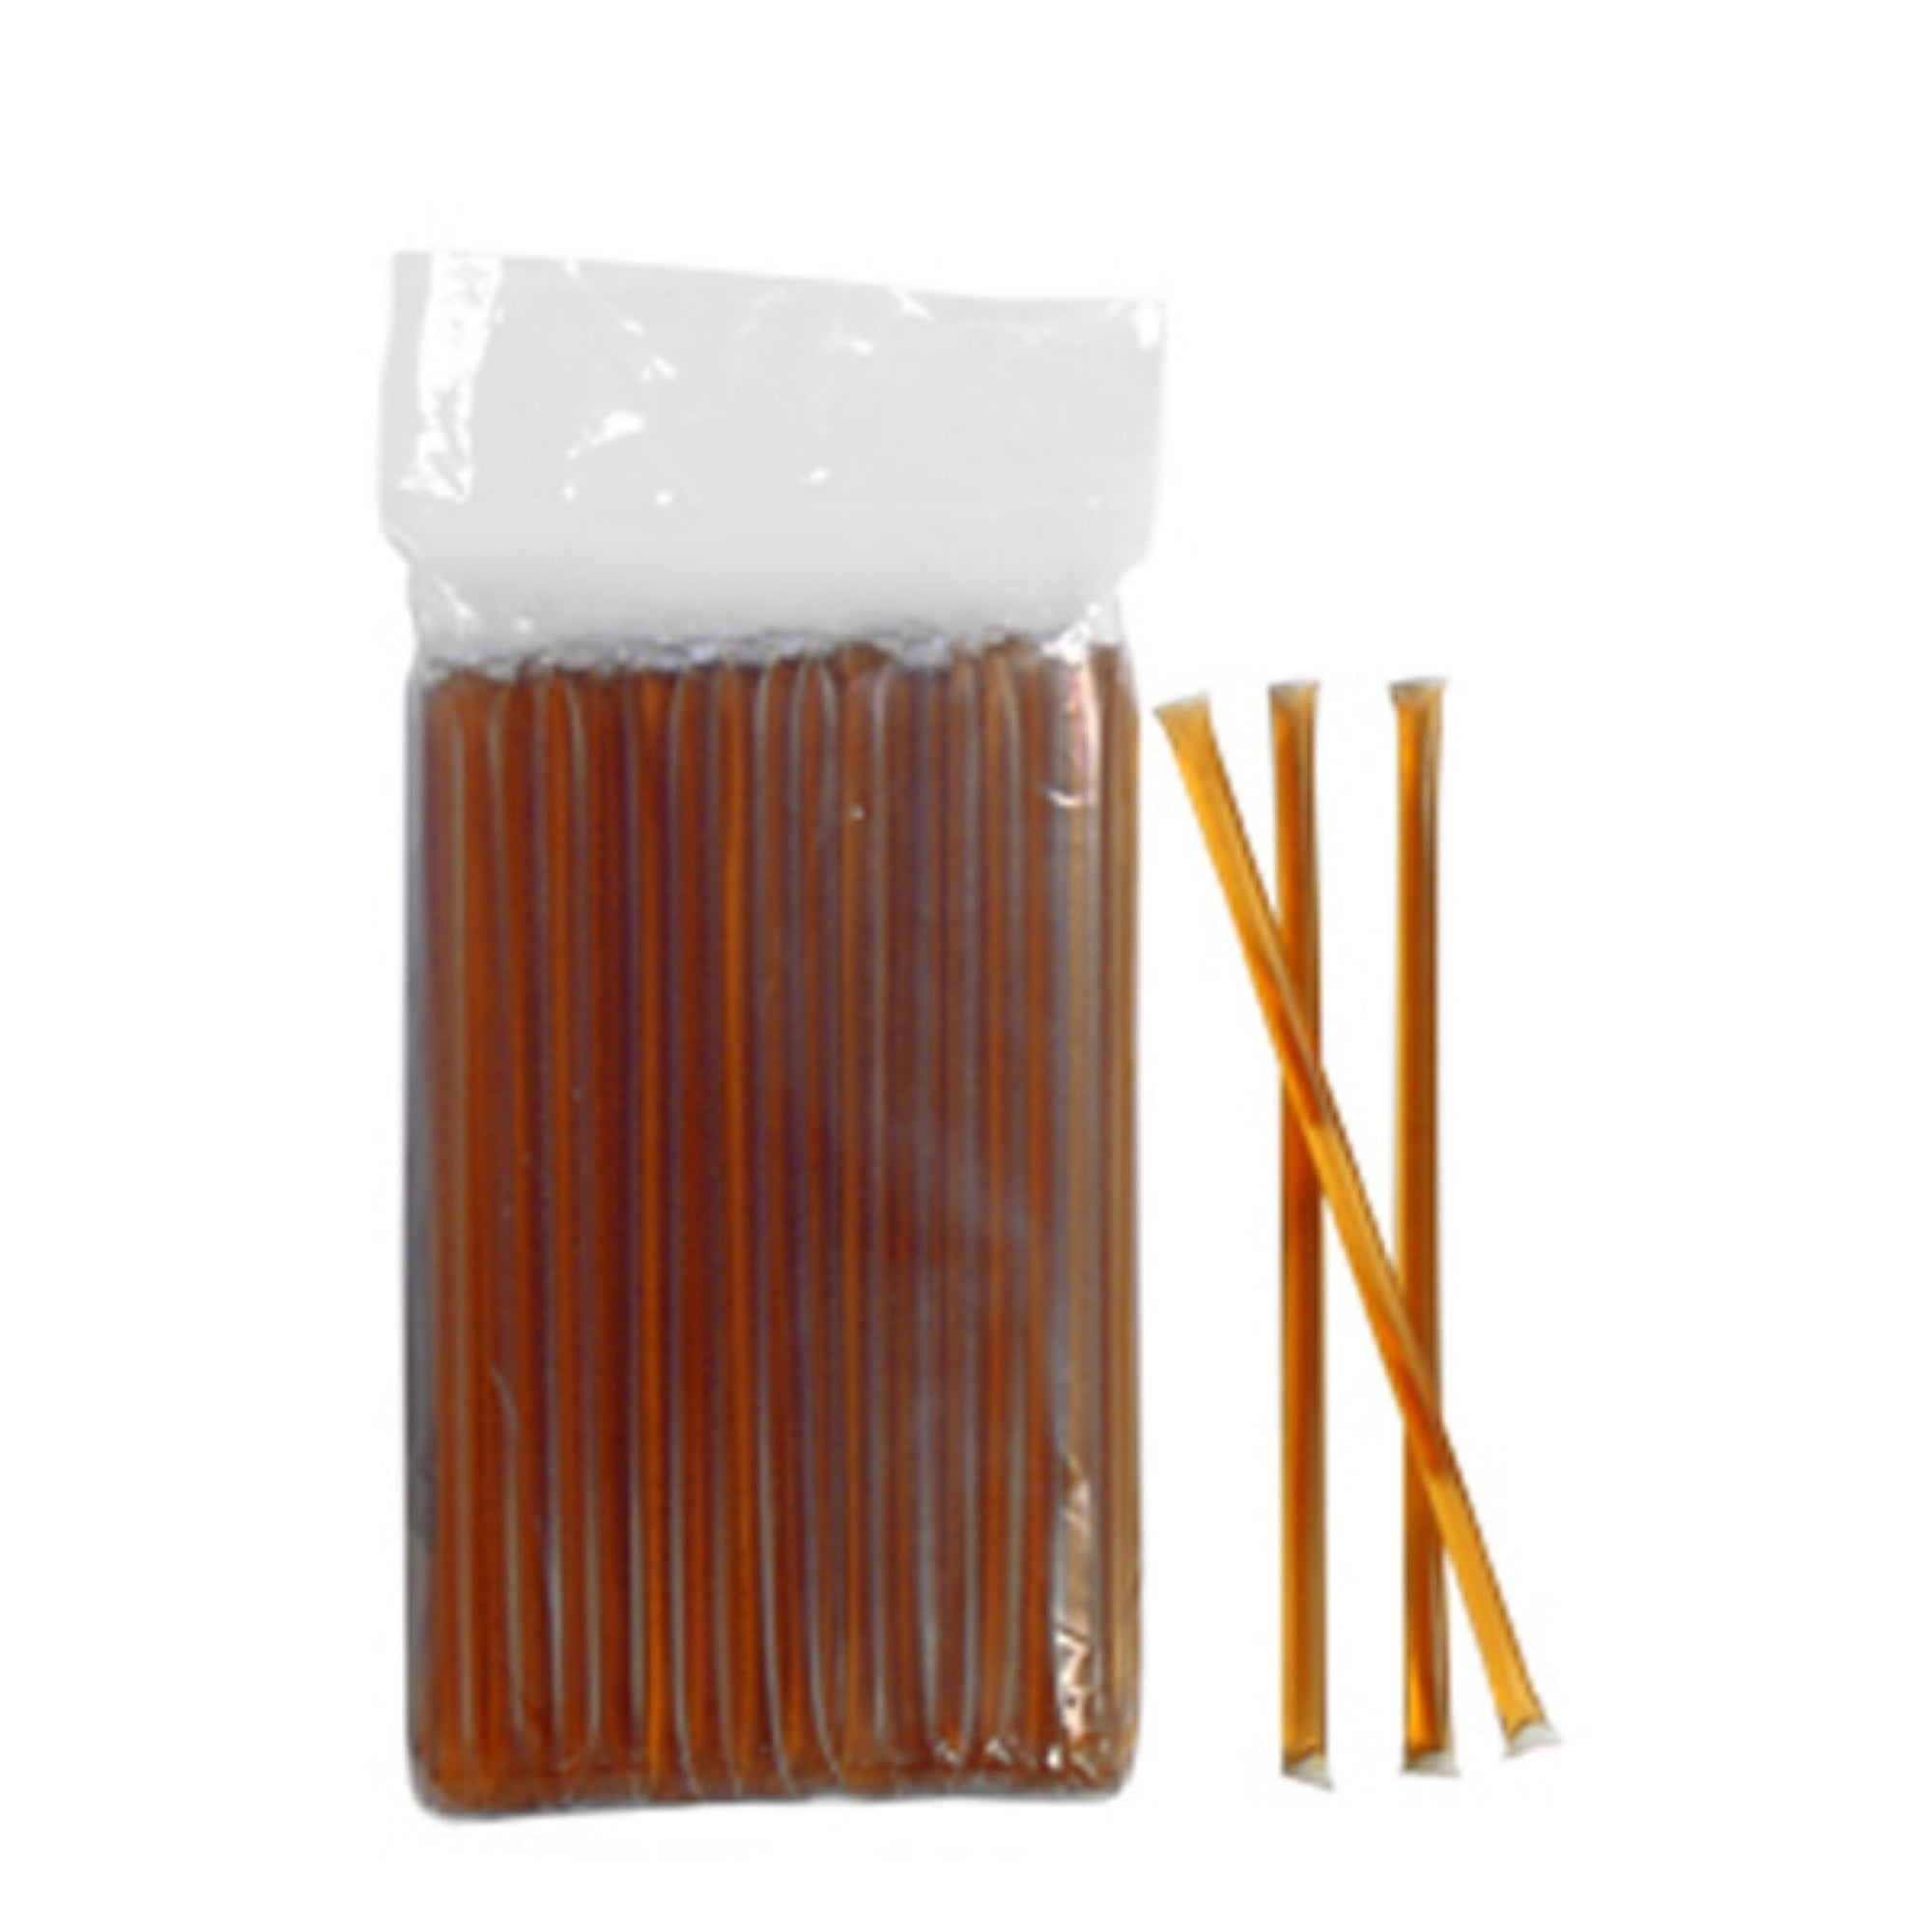 Anna's Sweet Clover Honey Sticks in a Large Bulk Pack of 100